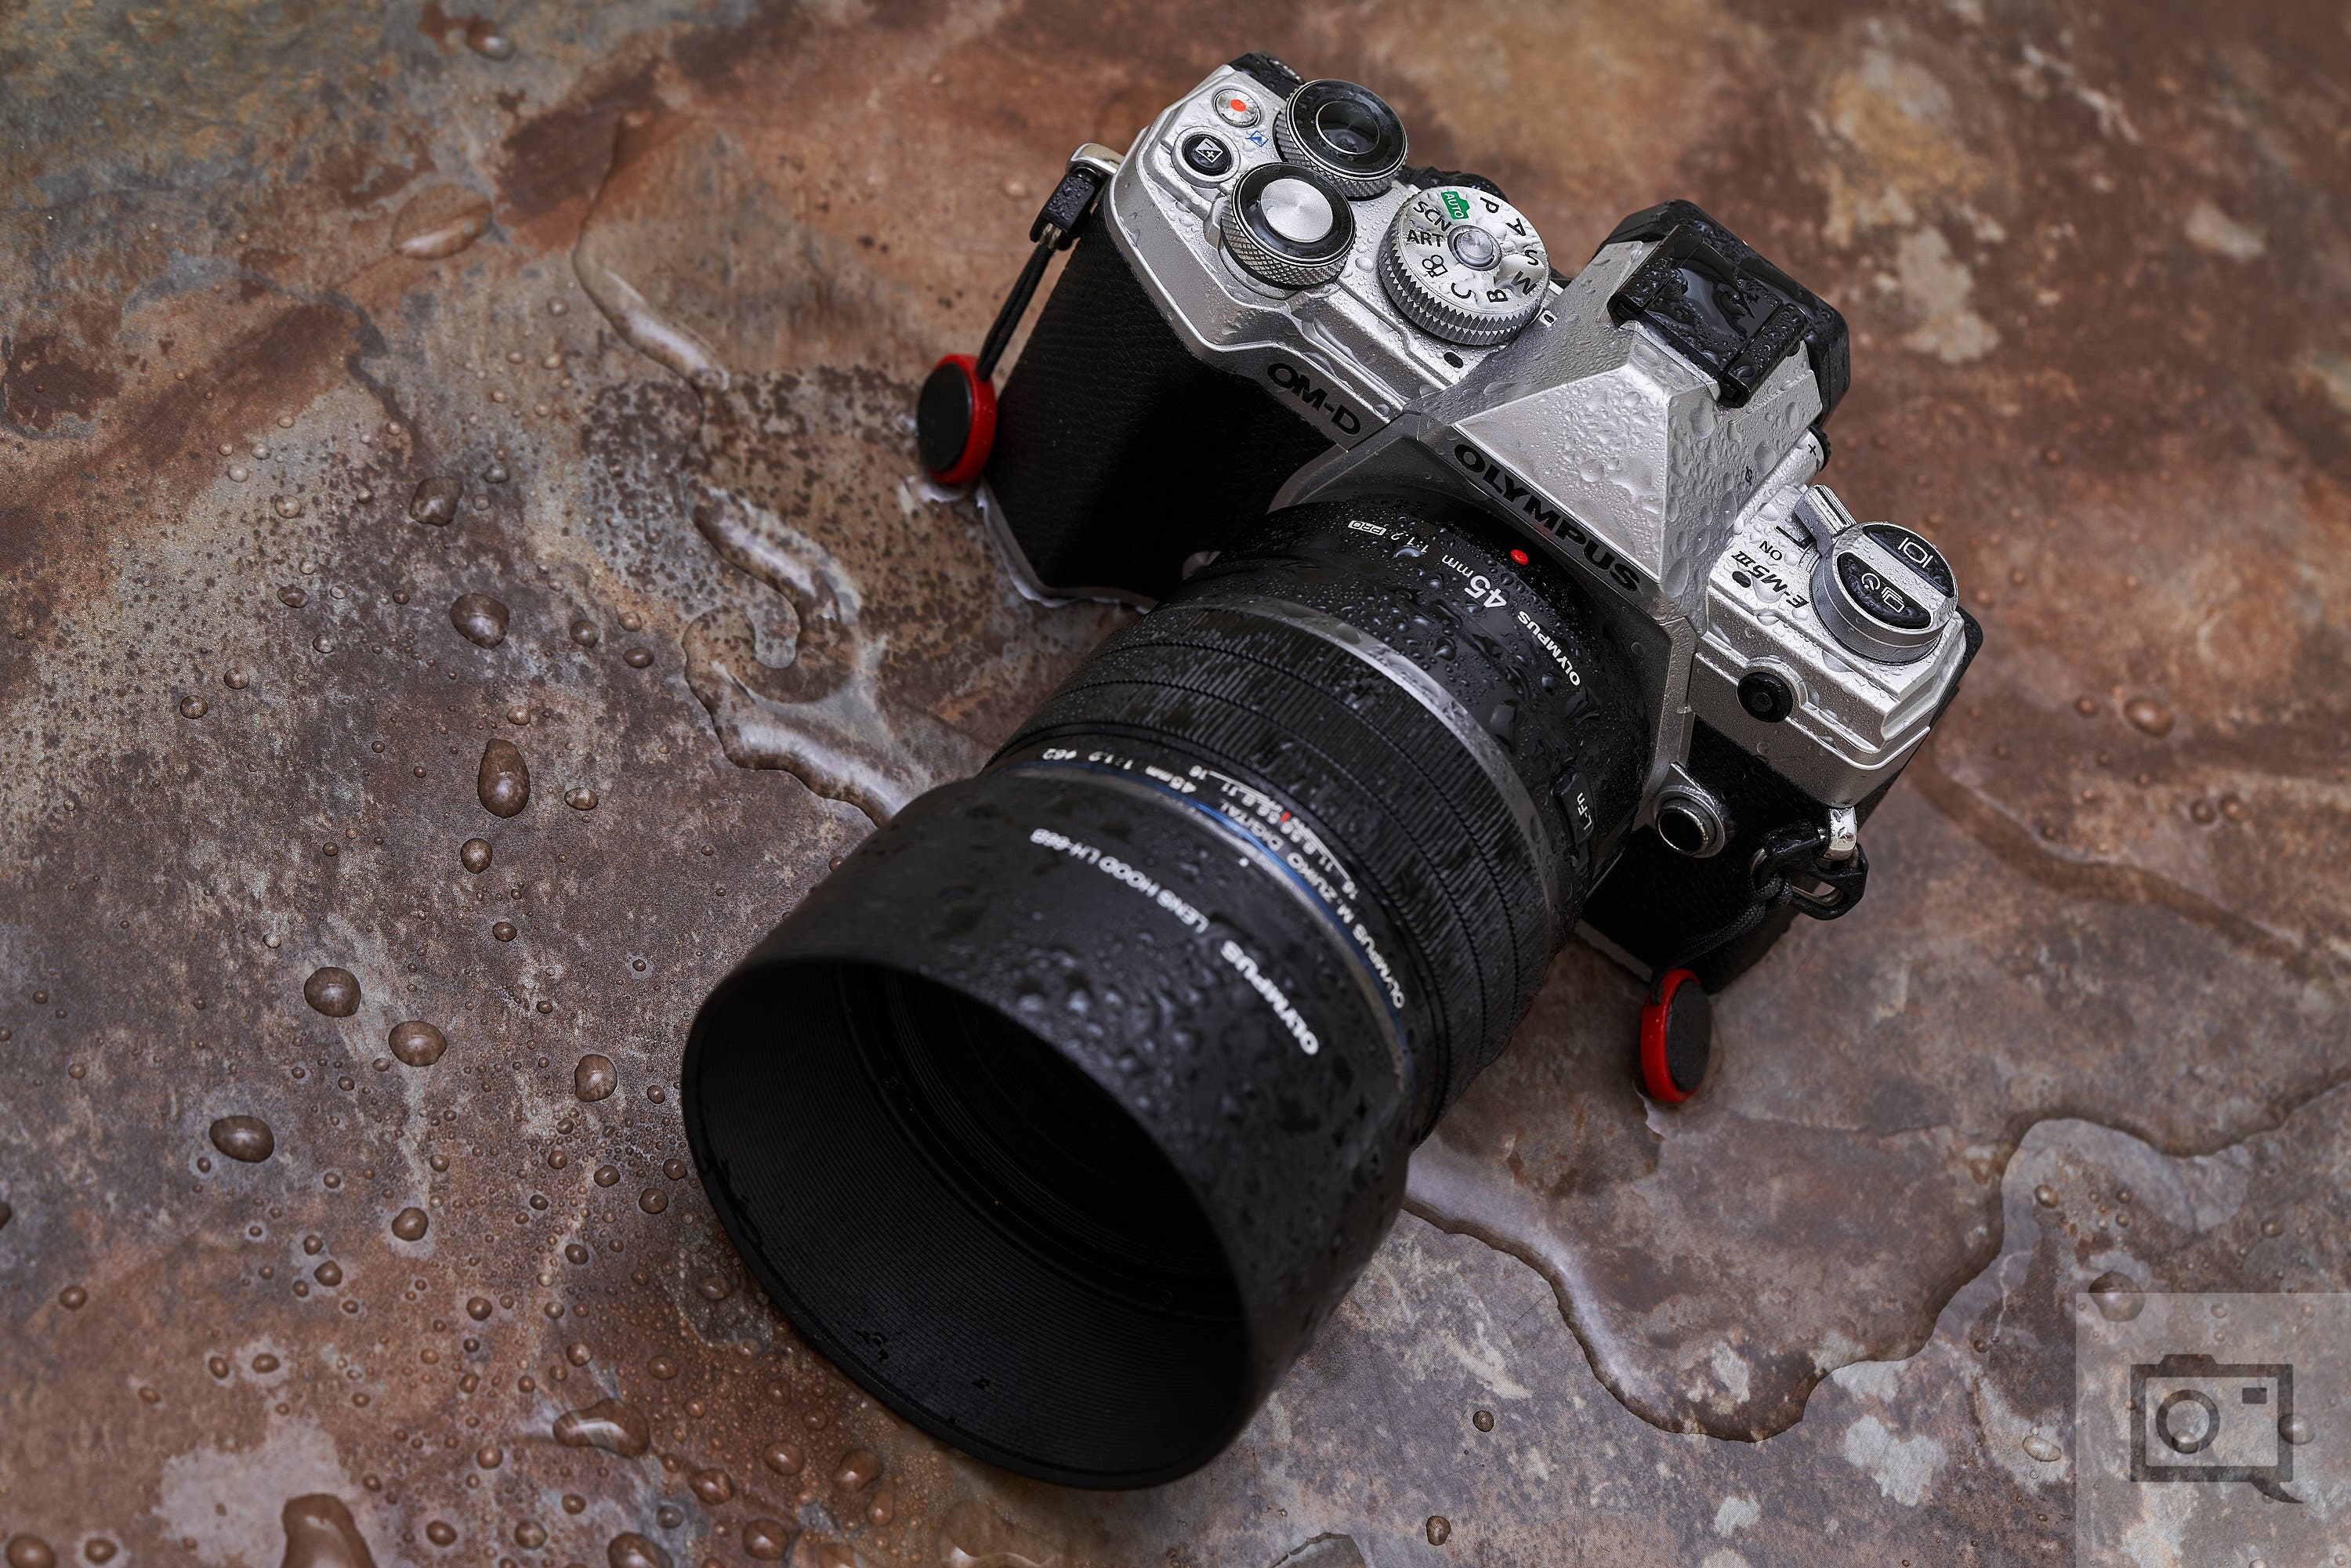 Review: Olympus OMD EM5 Mark III (A Shrunken Down EM1 Mark II)